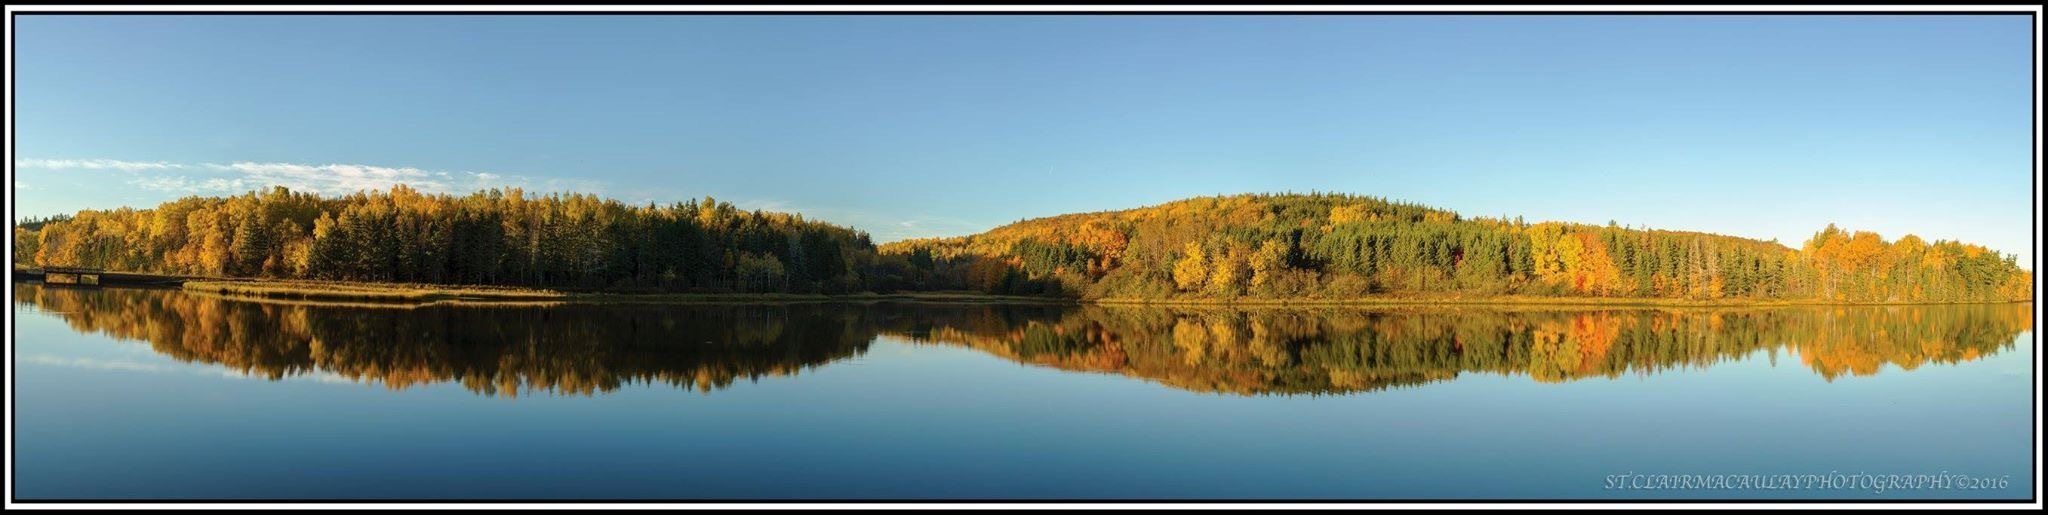 Fall mirror image  by stclairmac